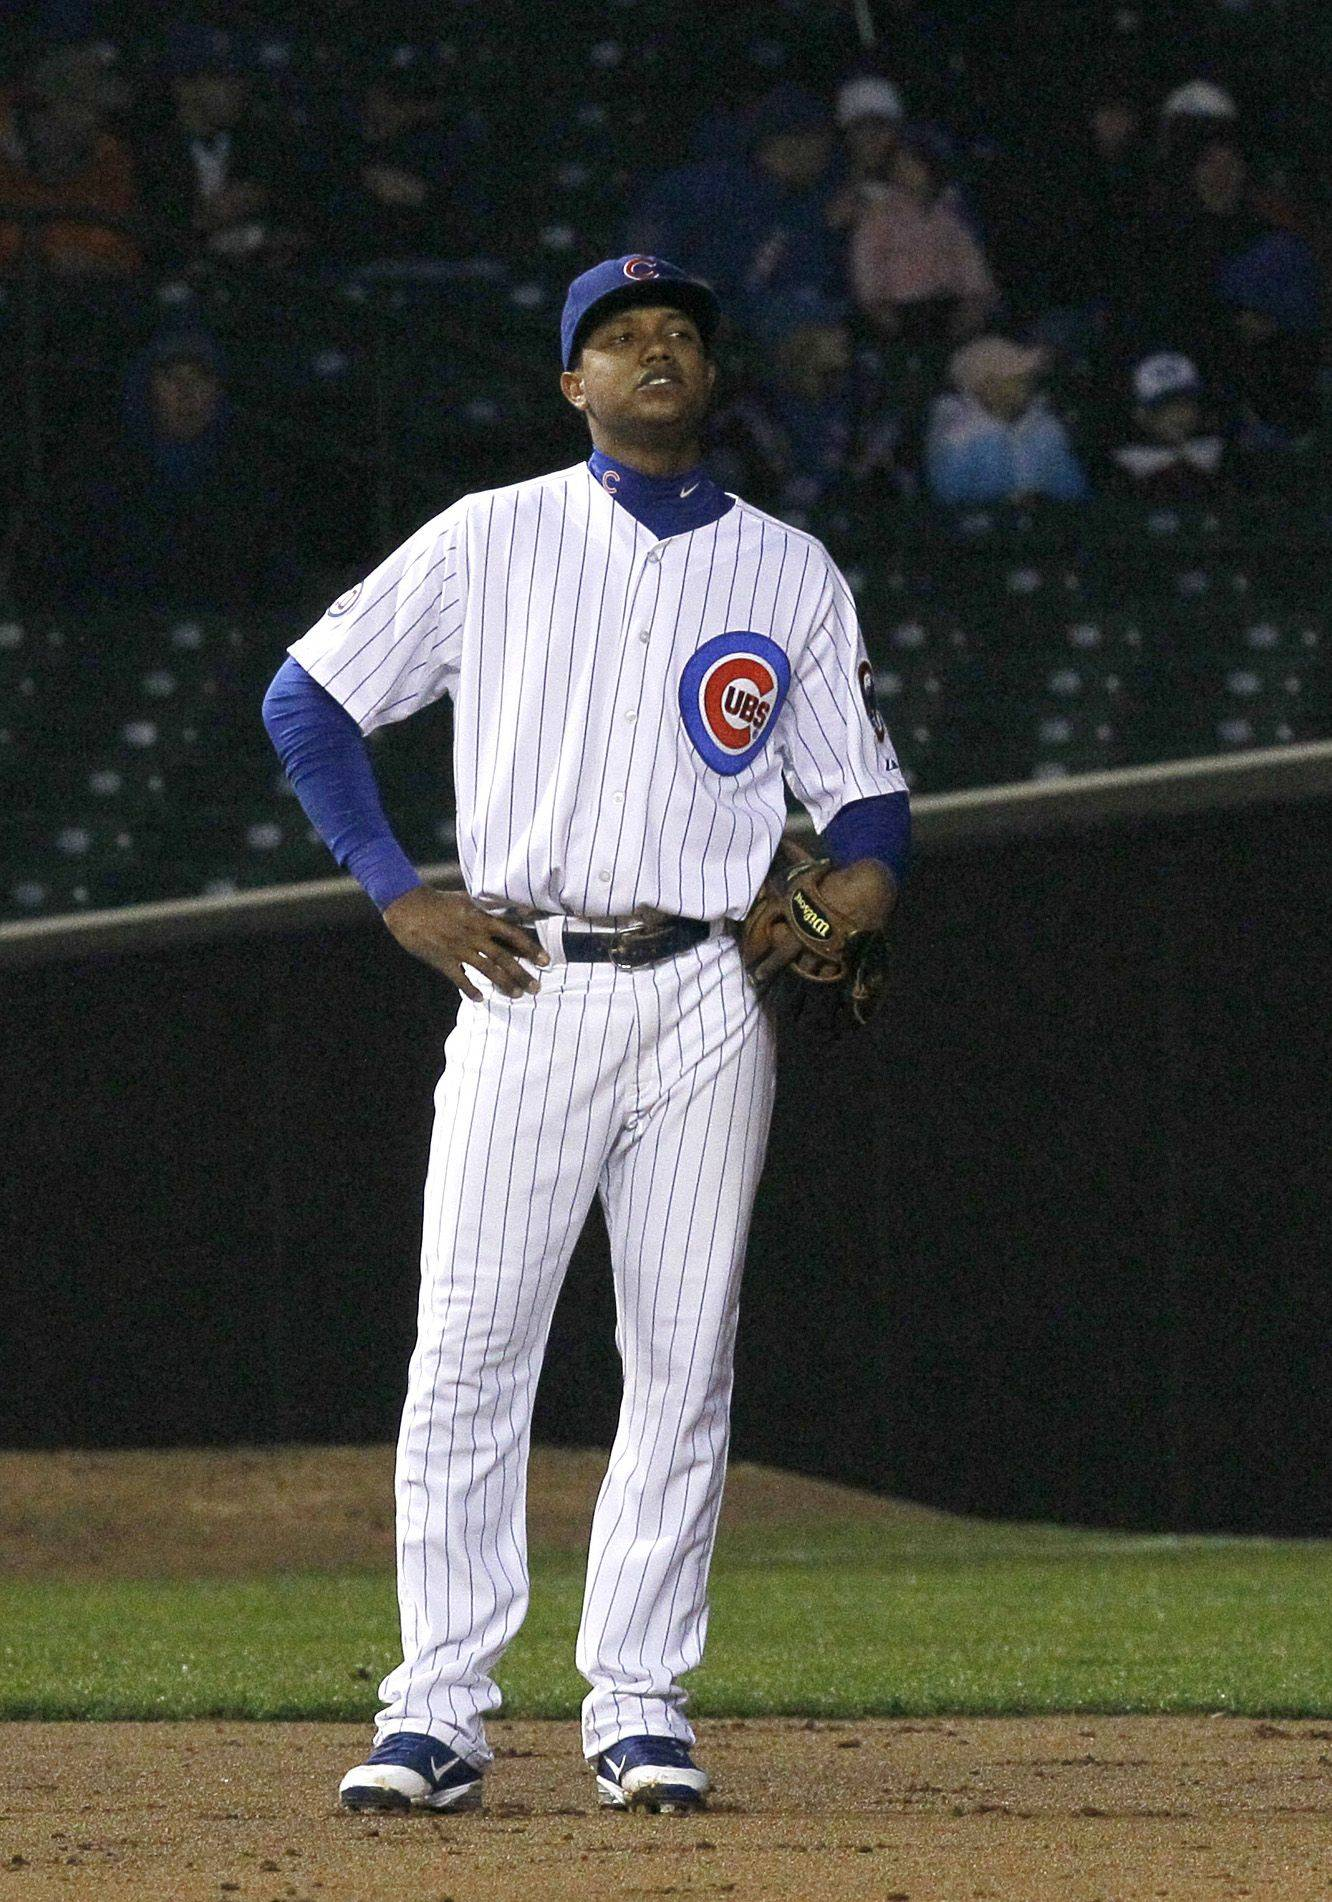 Castro's errors punctutate ugly night at Wrigley